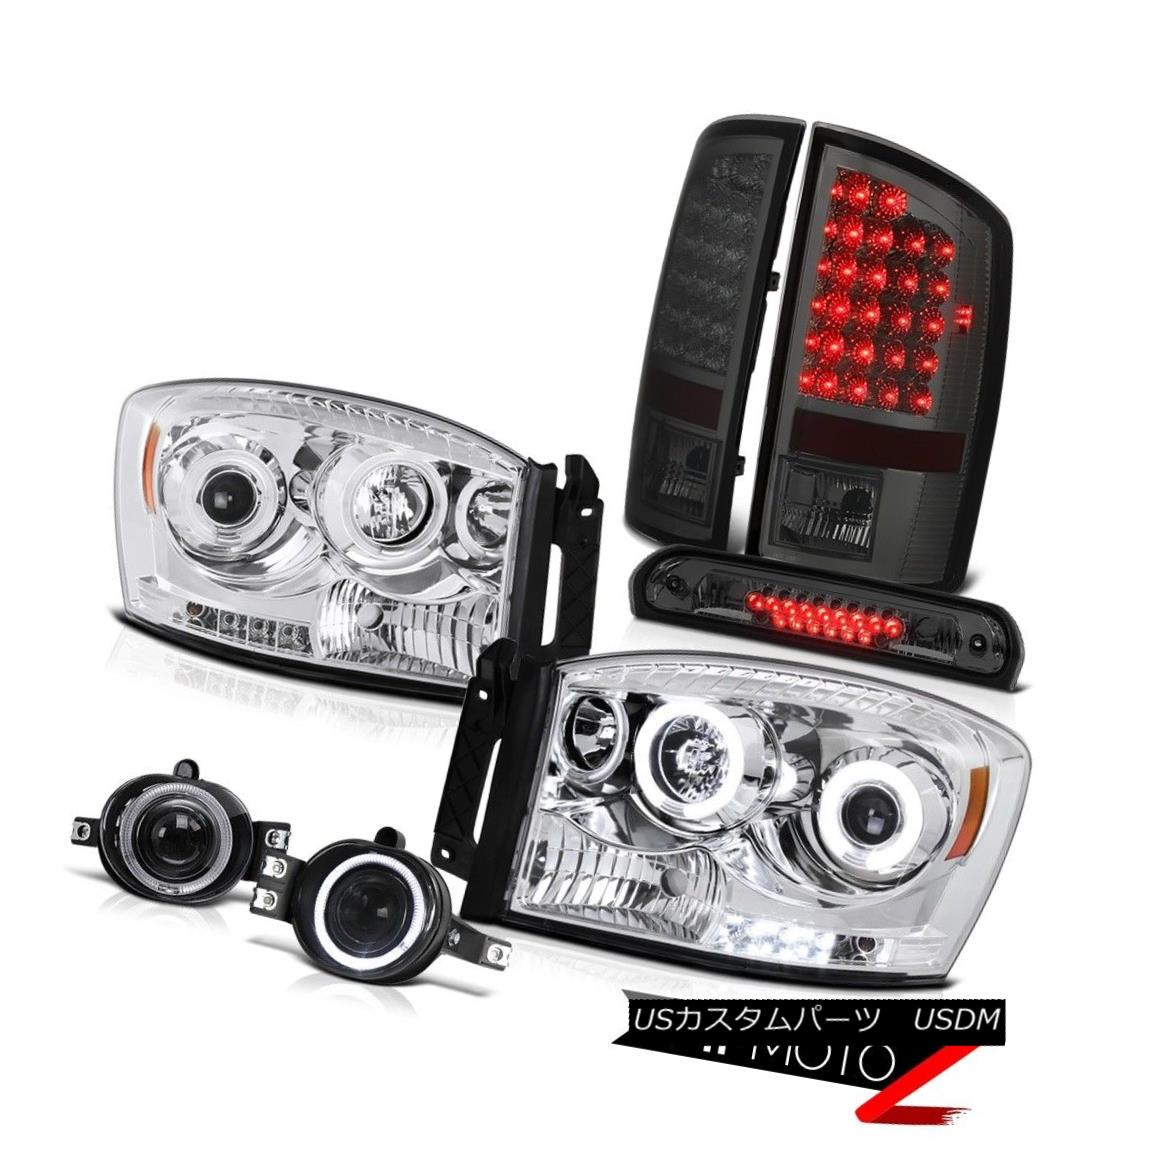 ヘッドライト 2007 2008 Ram Hemi CCFL Halo Headlights Dark LED Brake Light Euro Fog Tinted 3rd 2007年Ram Hemi CCFL HaloヘッドライトダークLEDブレーキライトEuro Fog Tinted 3rd